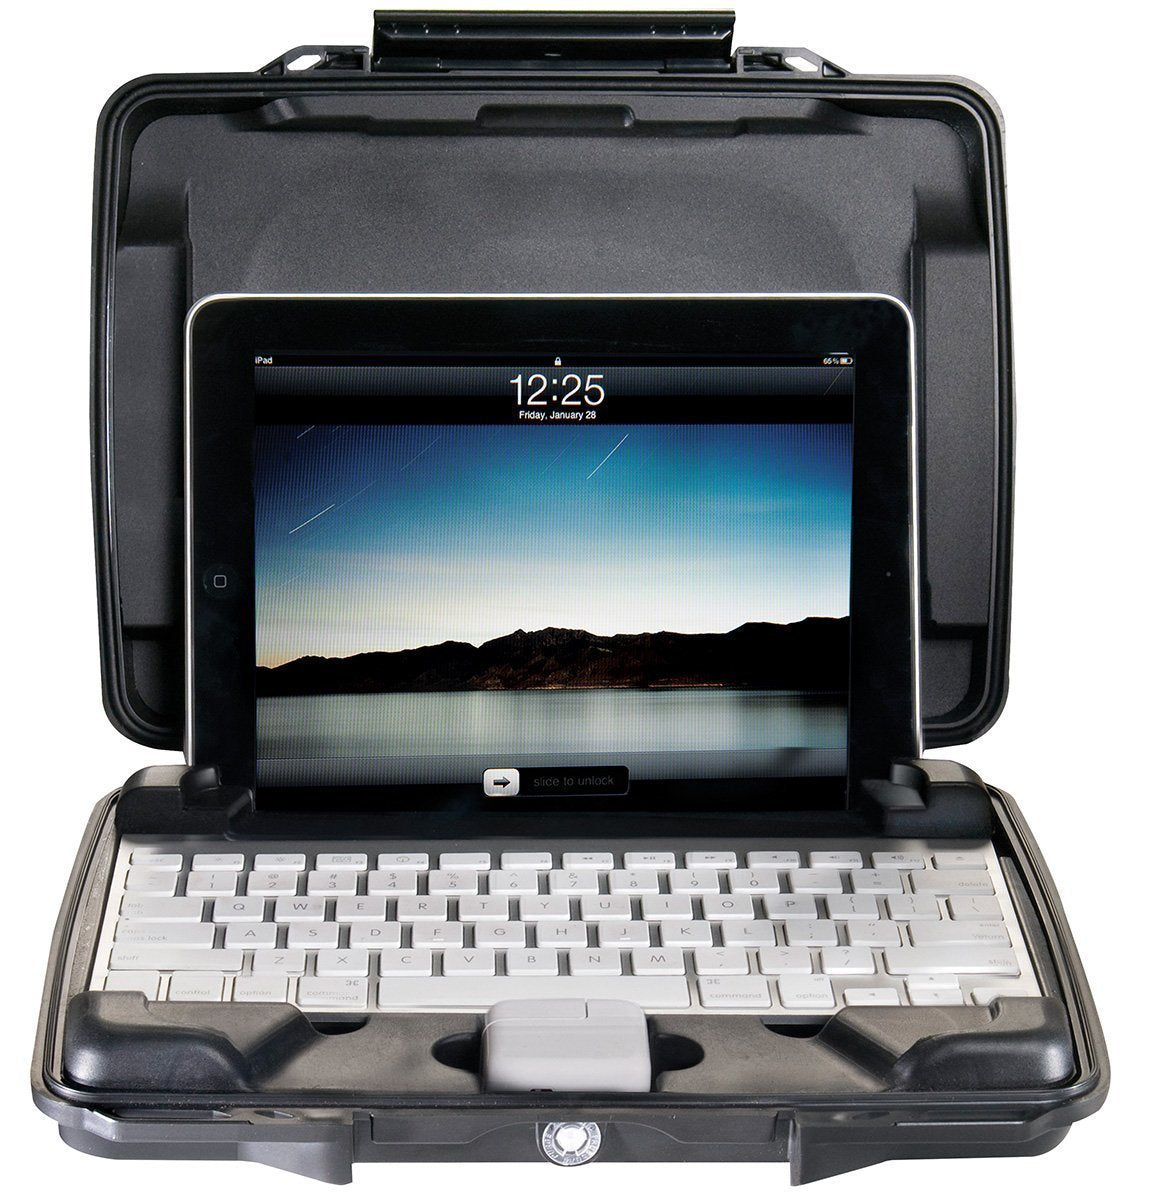 Pelican i1075 iPad Case Black-Bags, Backpacks and Protective Cases-Tactical Gear Australia